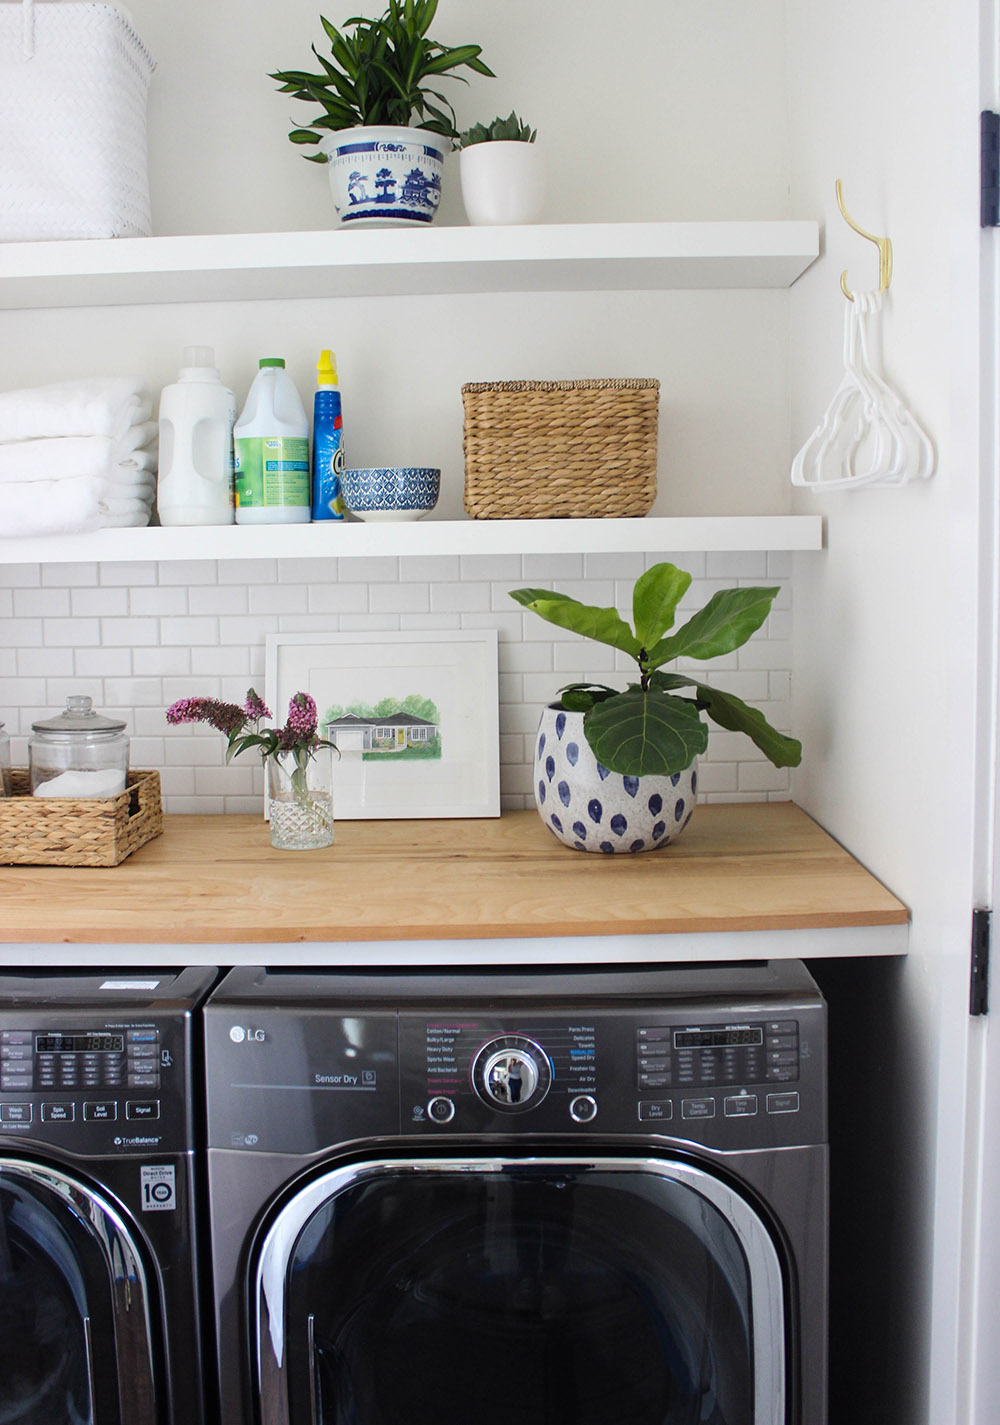 A butcher block counter sits above a black LG washer and dryer.